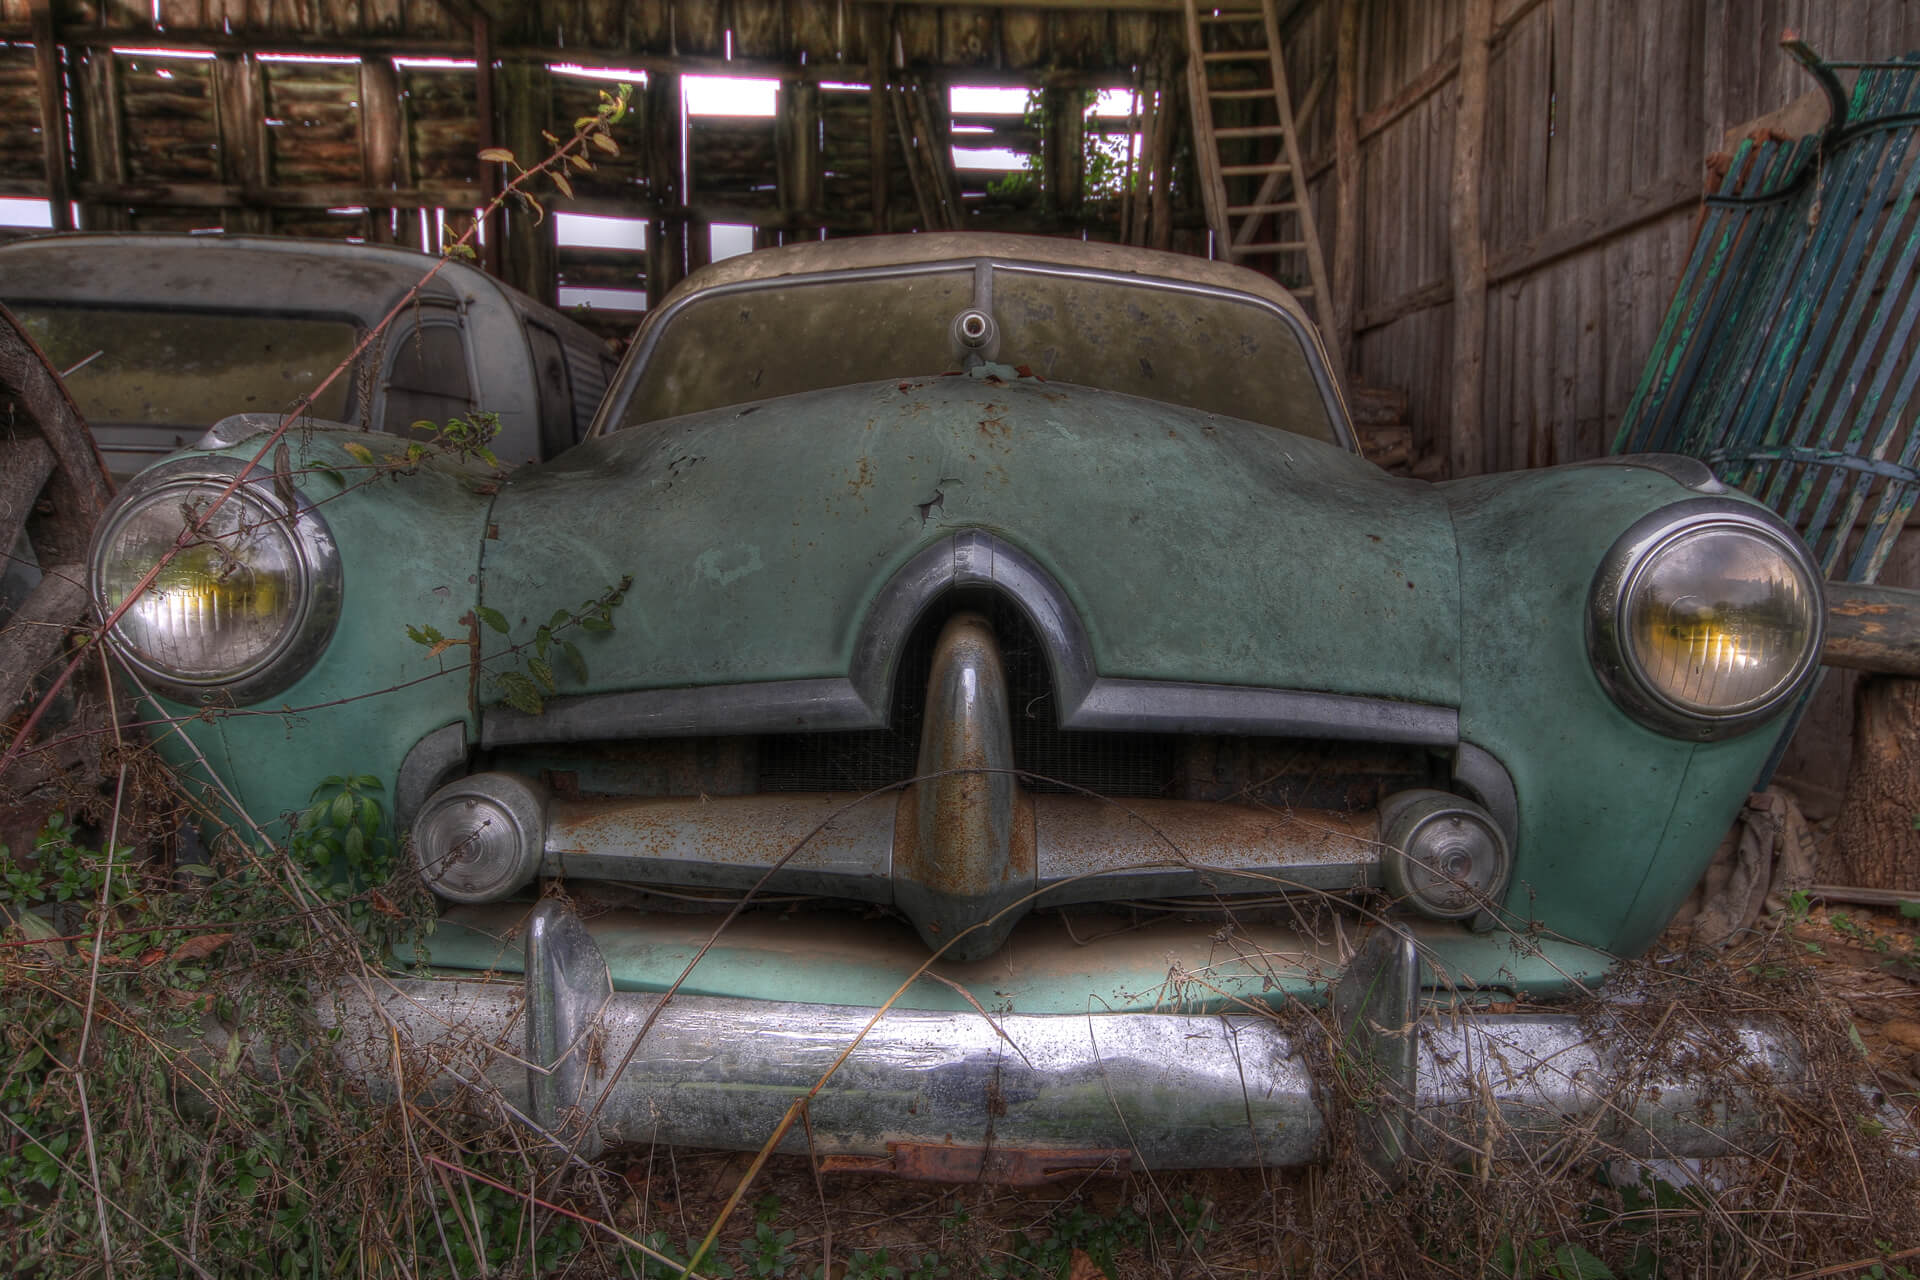 A (HDR) High Dynamic Range image of an abandoned green coloured vintage car left in an open wooden lean to in Couhe in France. The image was taken looking at the vehicle from bumper height. Behind it sits what appears to be an abandoned grey Citroen Van.